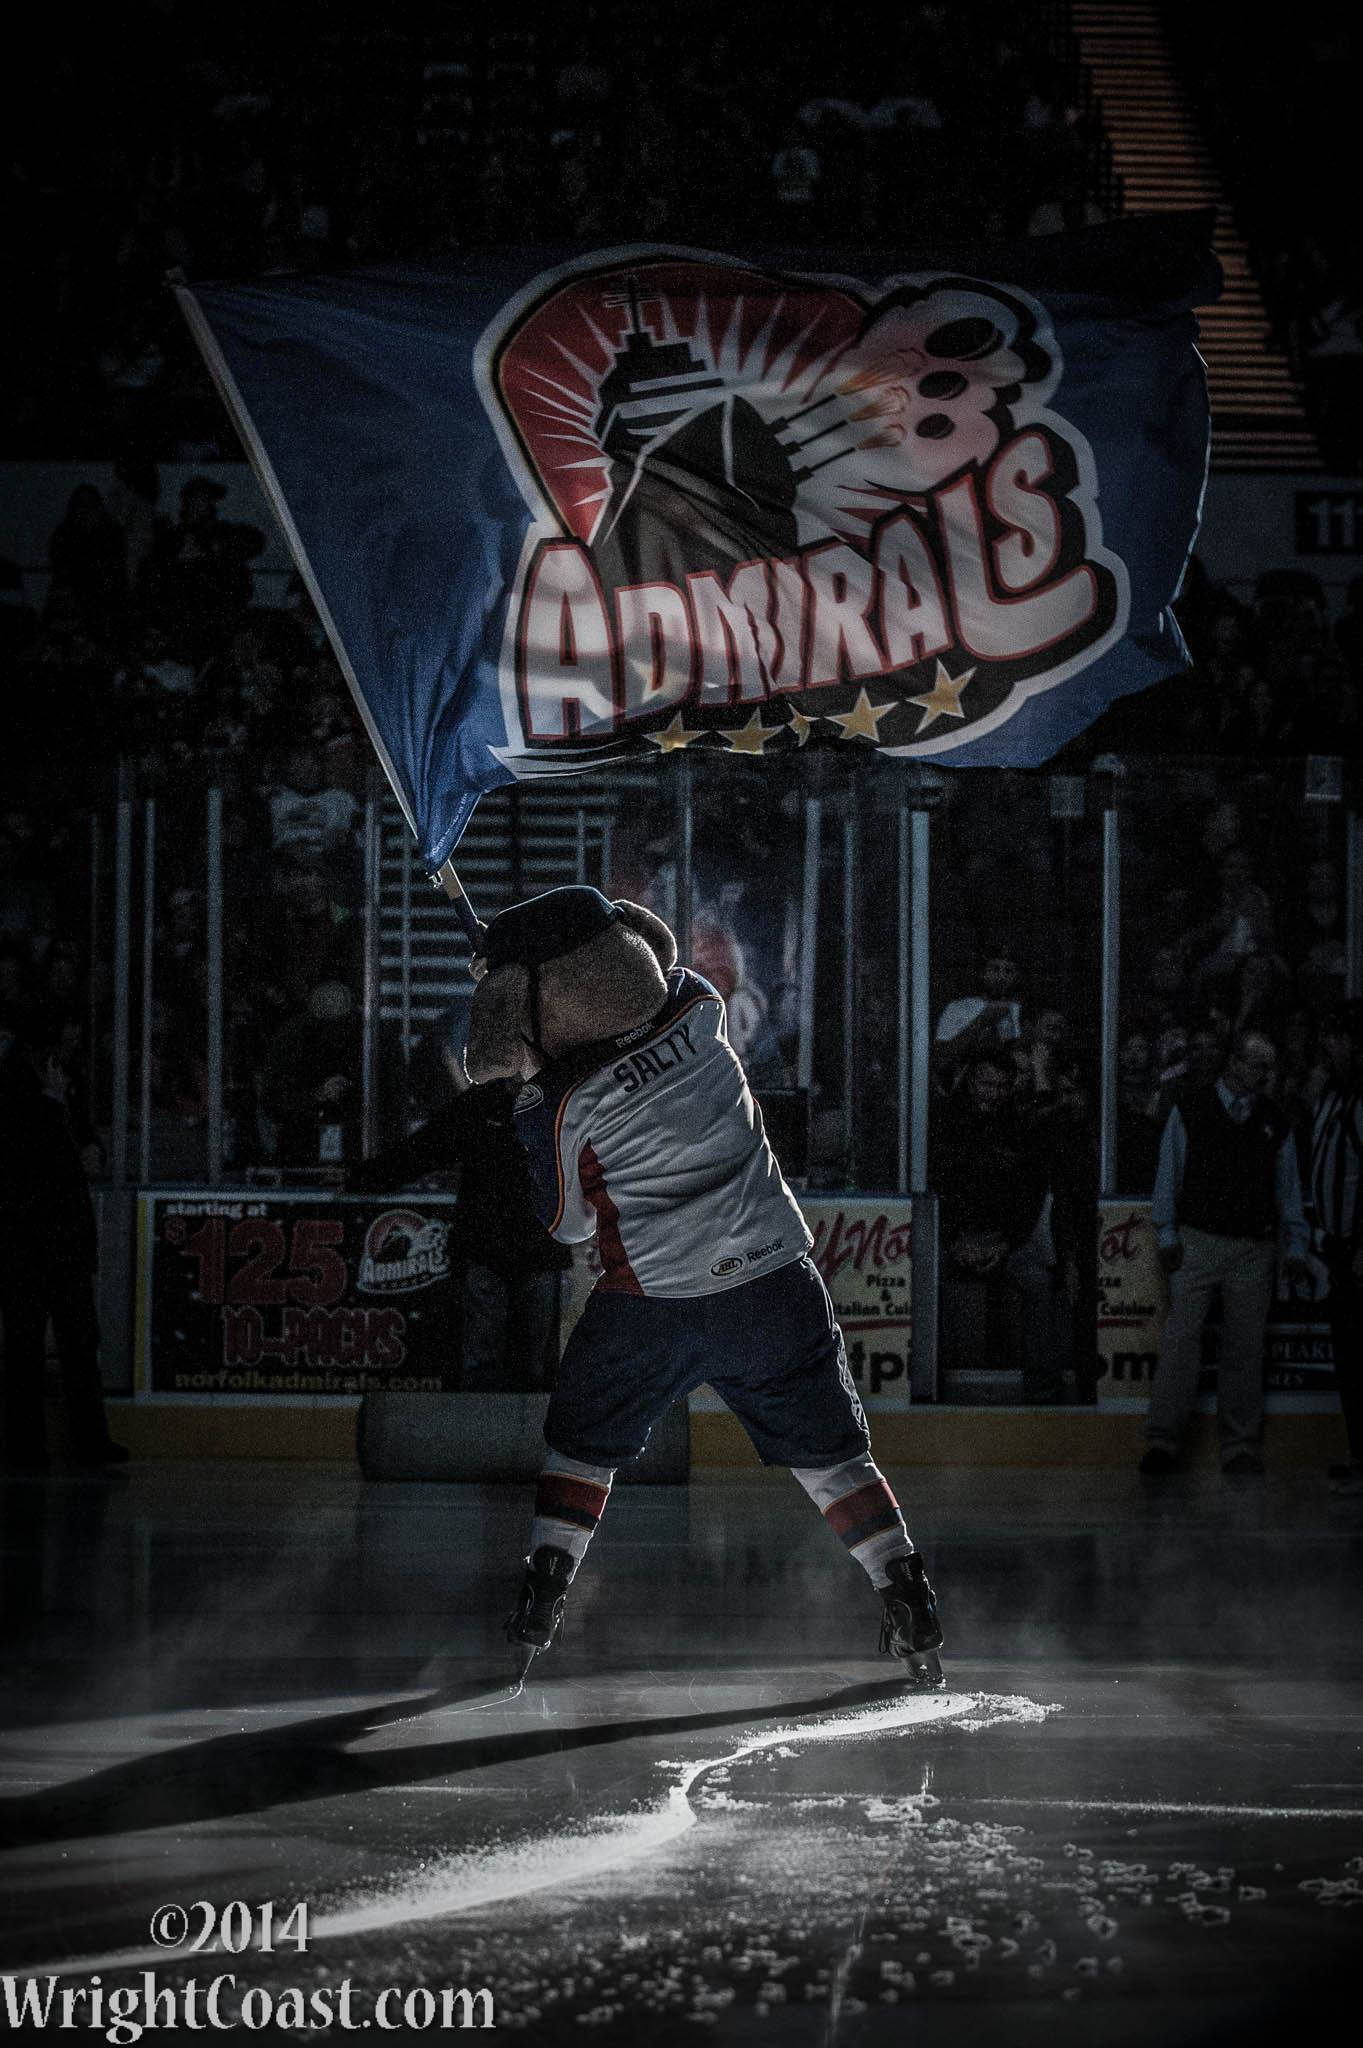 Salty, the Norfolk Admirals Mascot, waves the Admirals flag during pregame ceremony.